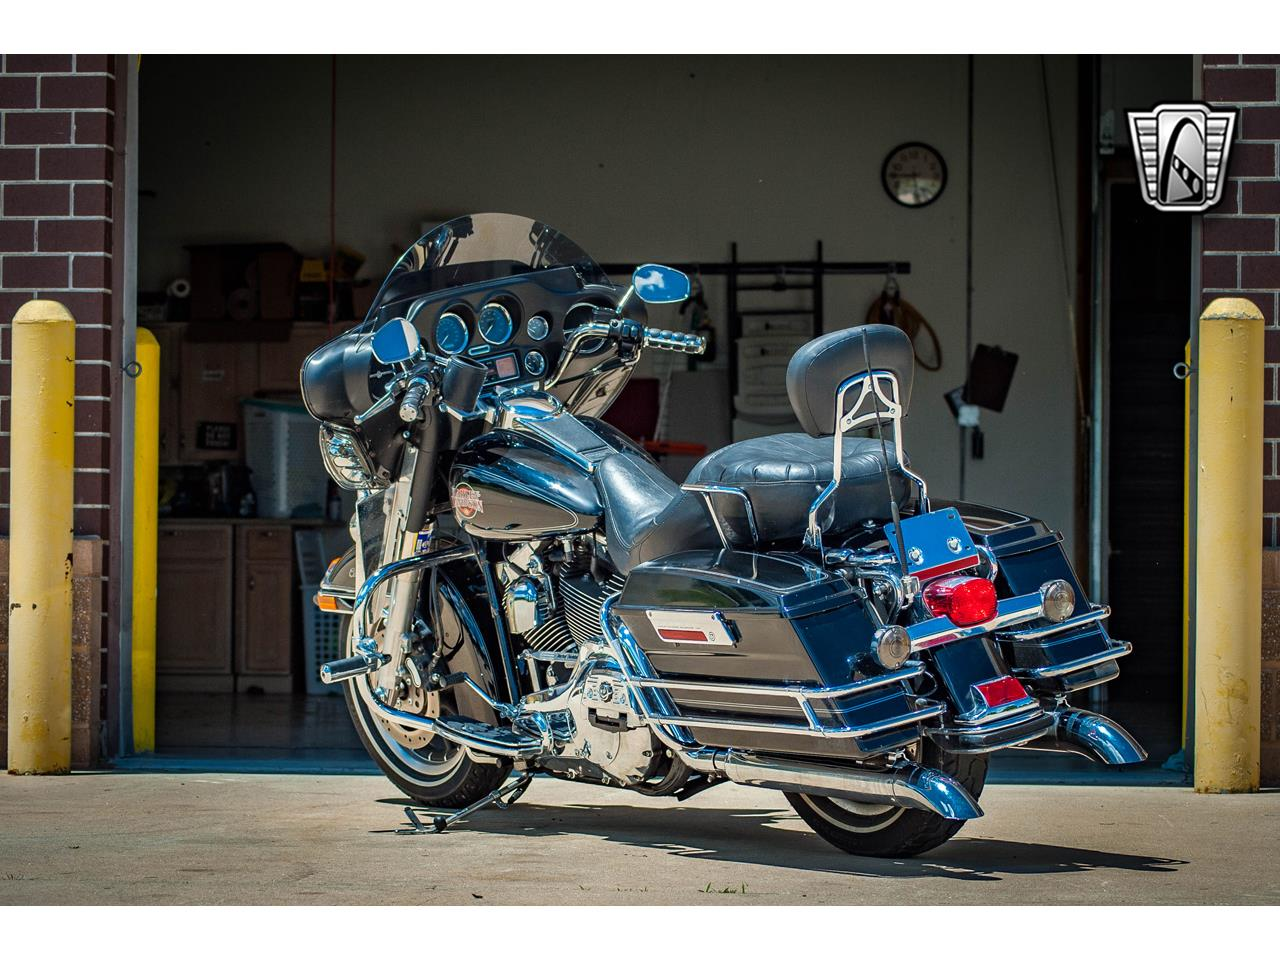 Large Picture of 2004 Harley-Davidson Motorcycle located in O'Fallon Illinois - $12,000.00 - QD6F